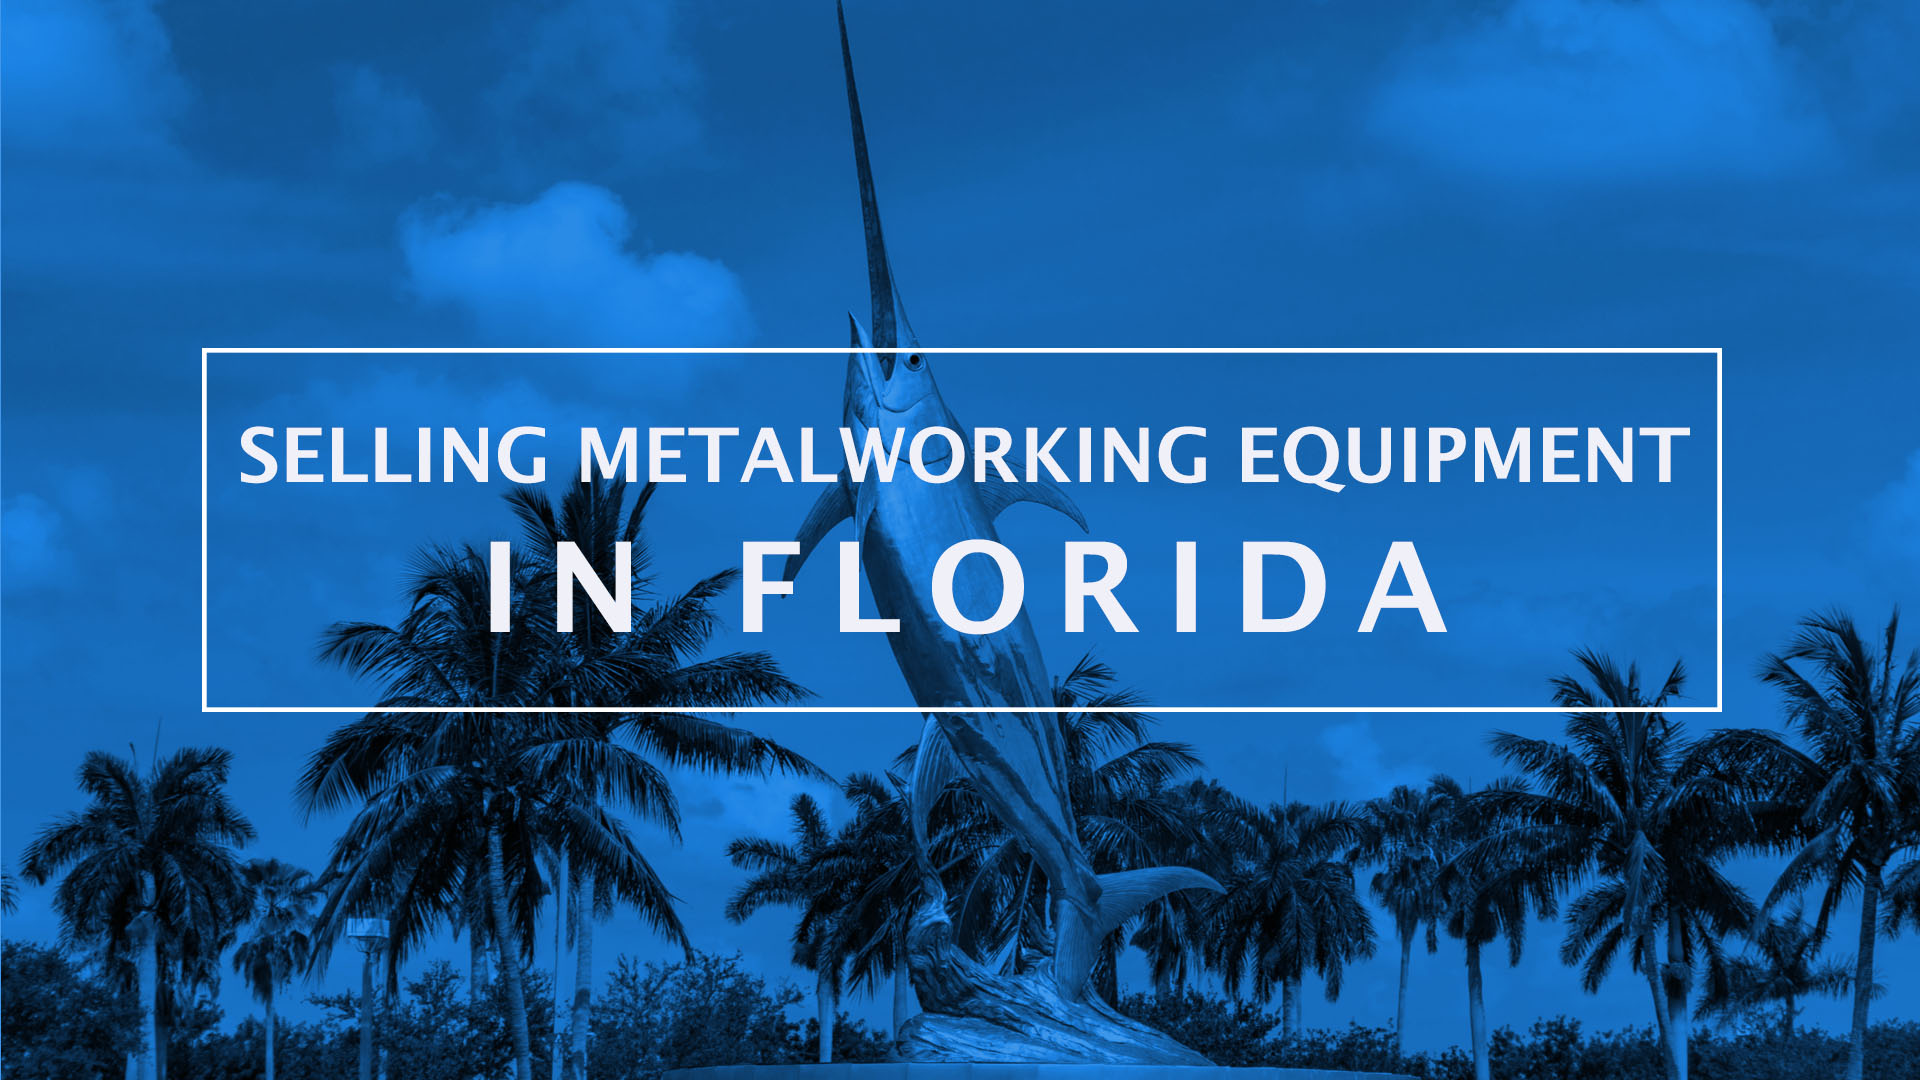 Selling Metalworking Equipment in Florida